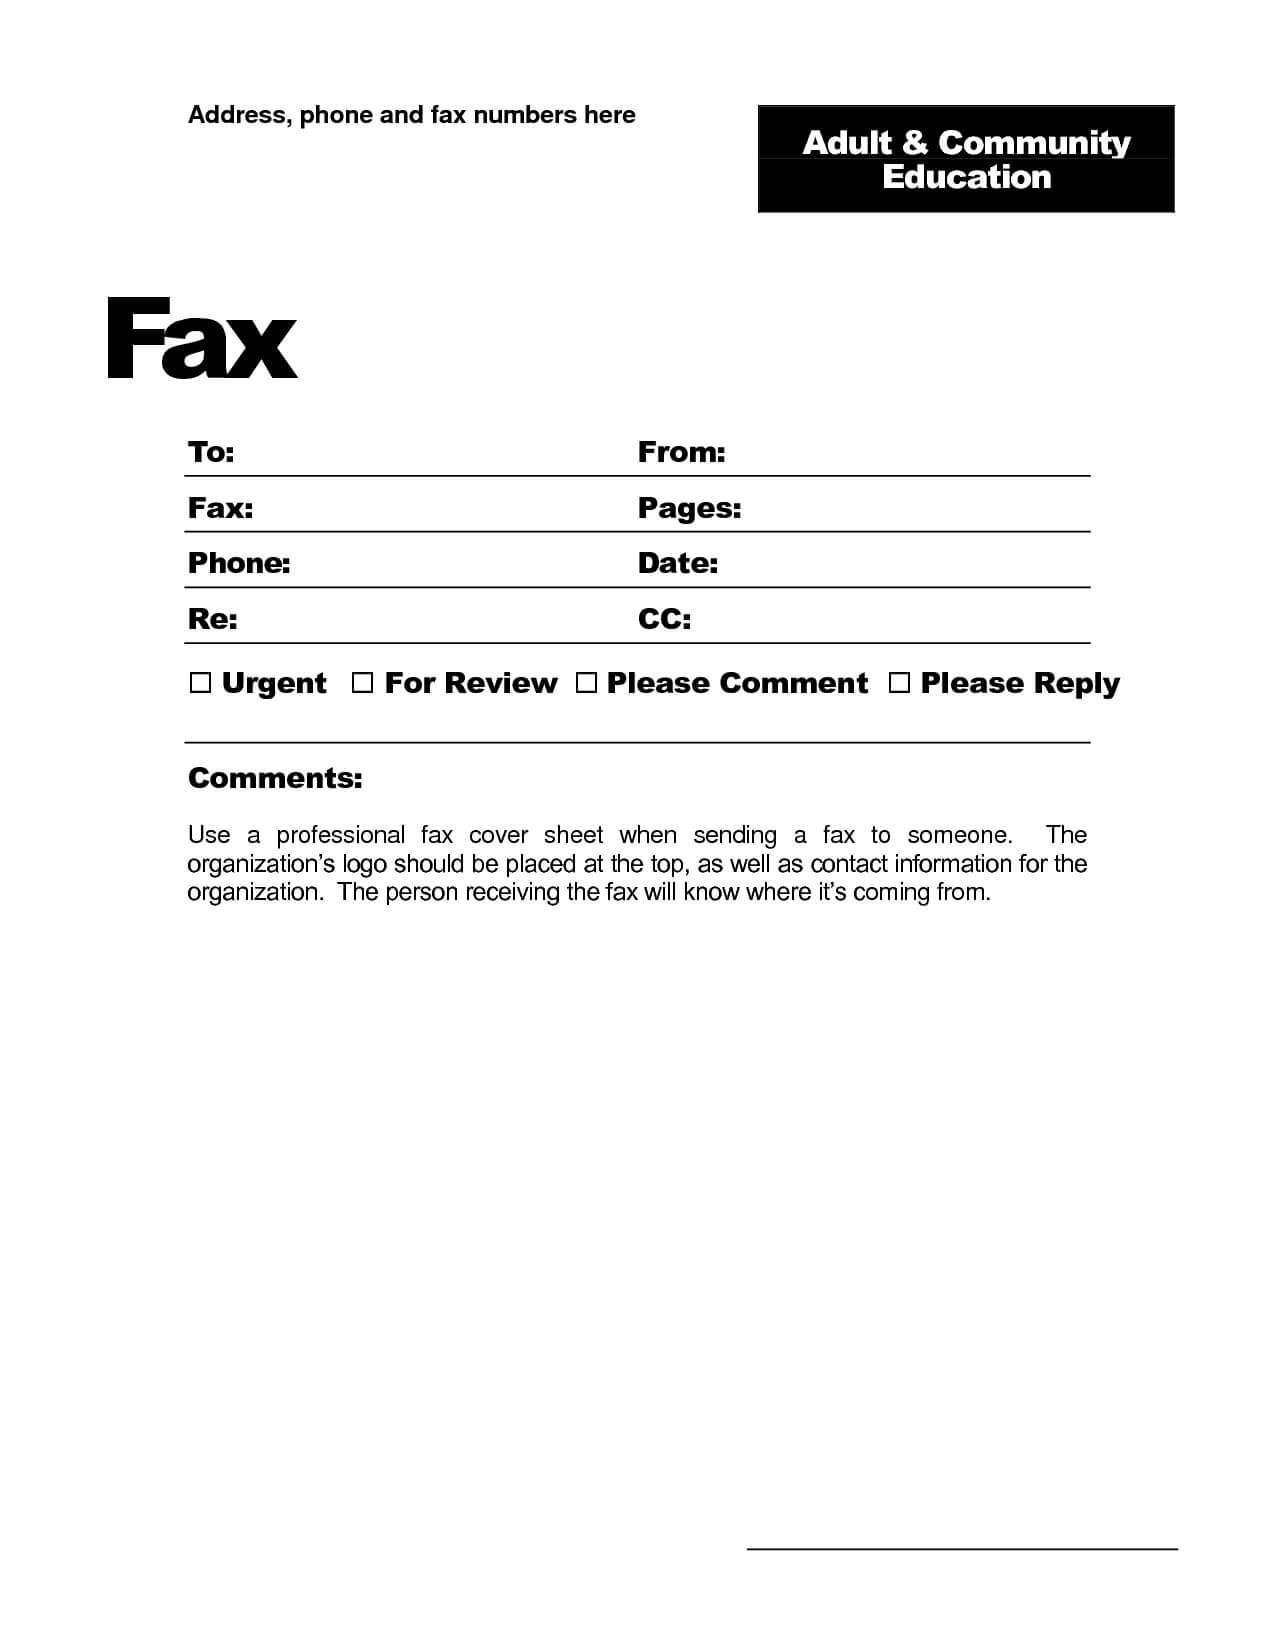 Fax Template Word 2010 - Free Download Throughout Fax Cover Sheet Template Word 2010